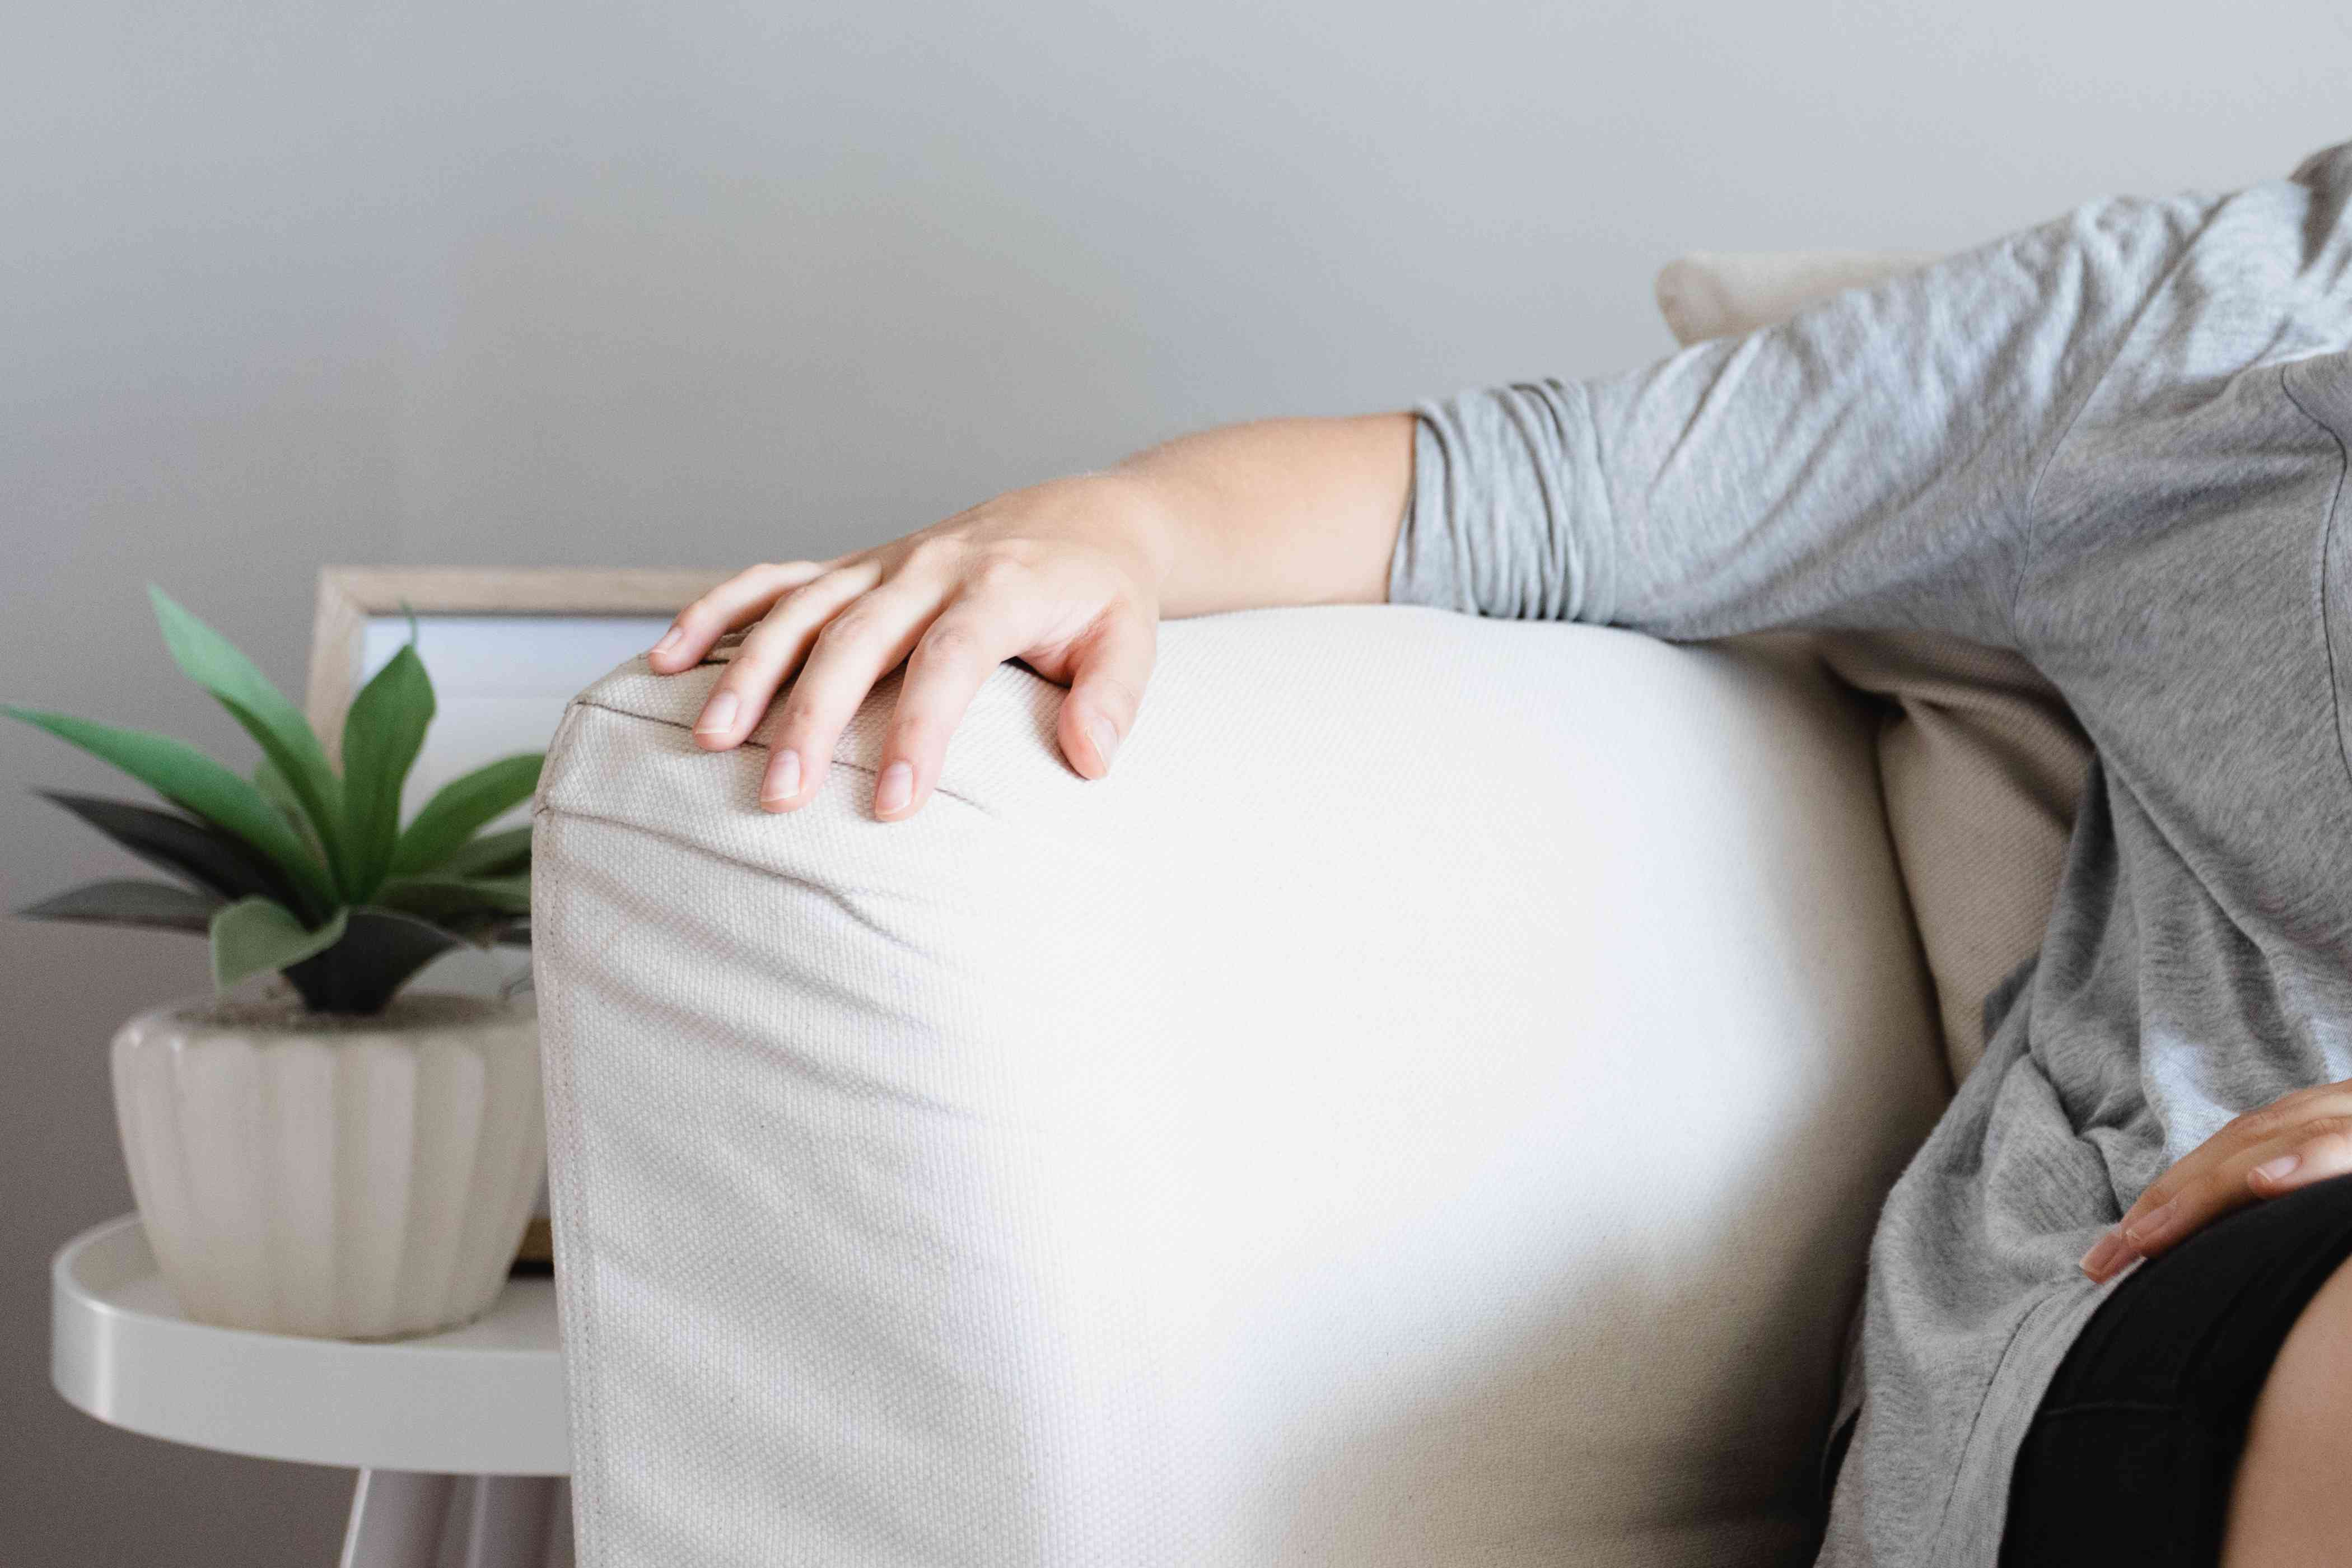 Arm resting on white couch arm next to side table with plant